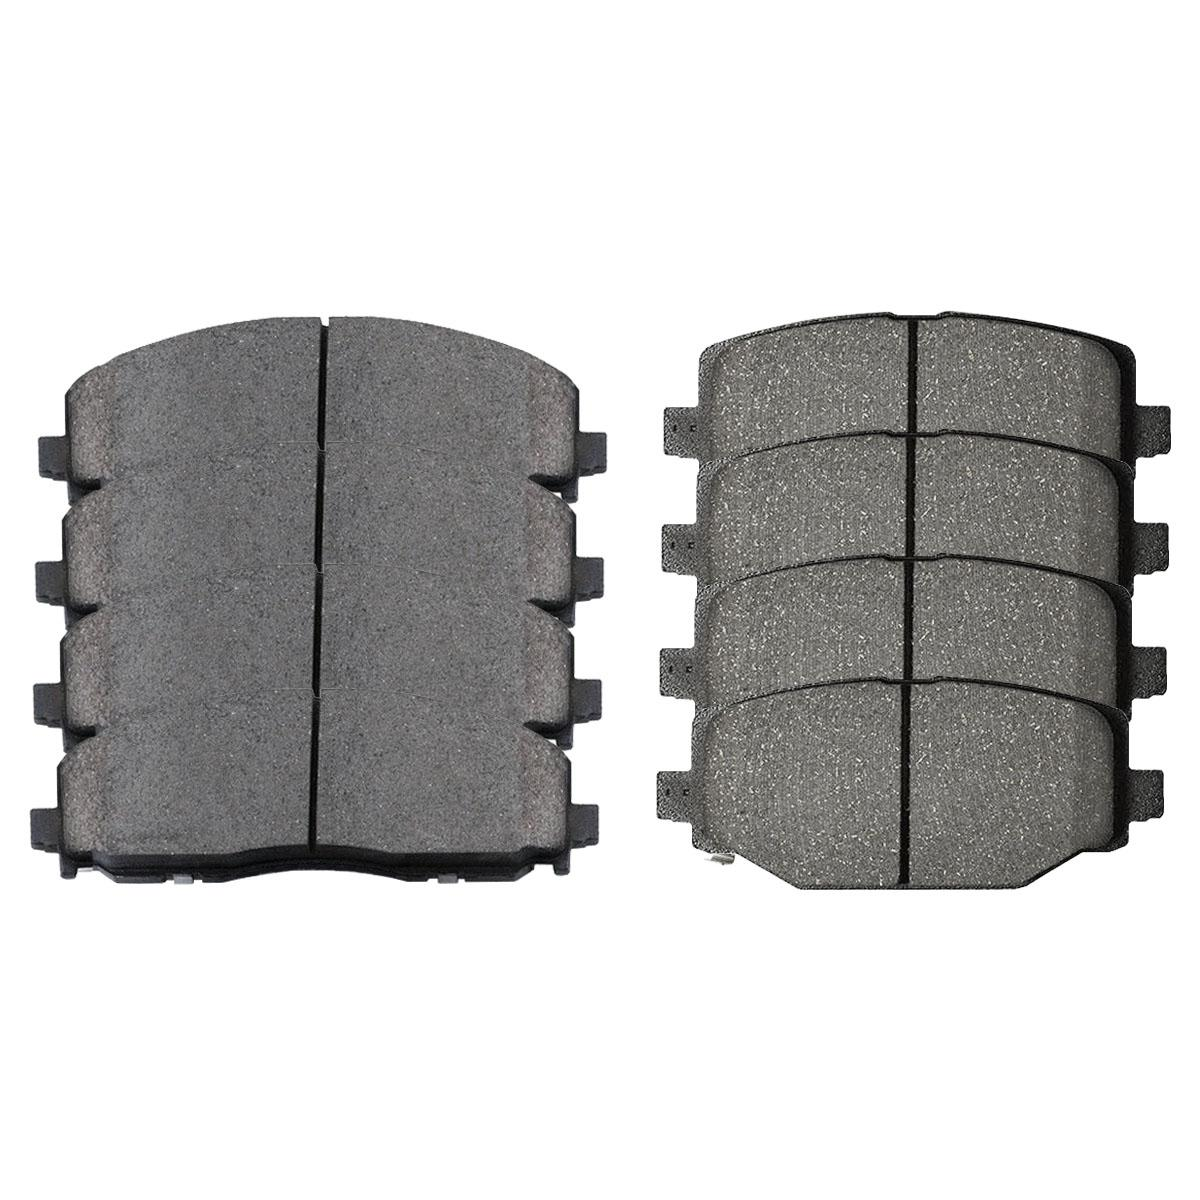 Prime Choice Auto Parts SCD1589-1596 Premium Front /& Rear Ceramic Disc Brake Pads 2 Full Complete Sets 4 Pairs 8 Pads